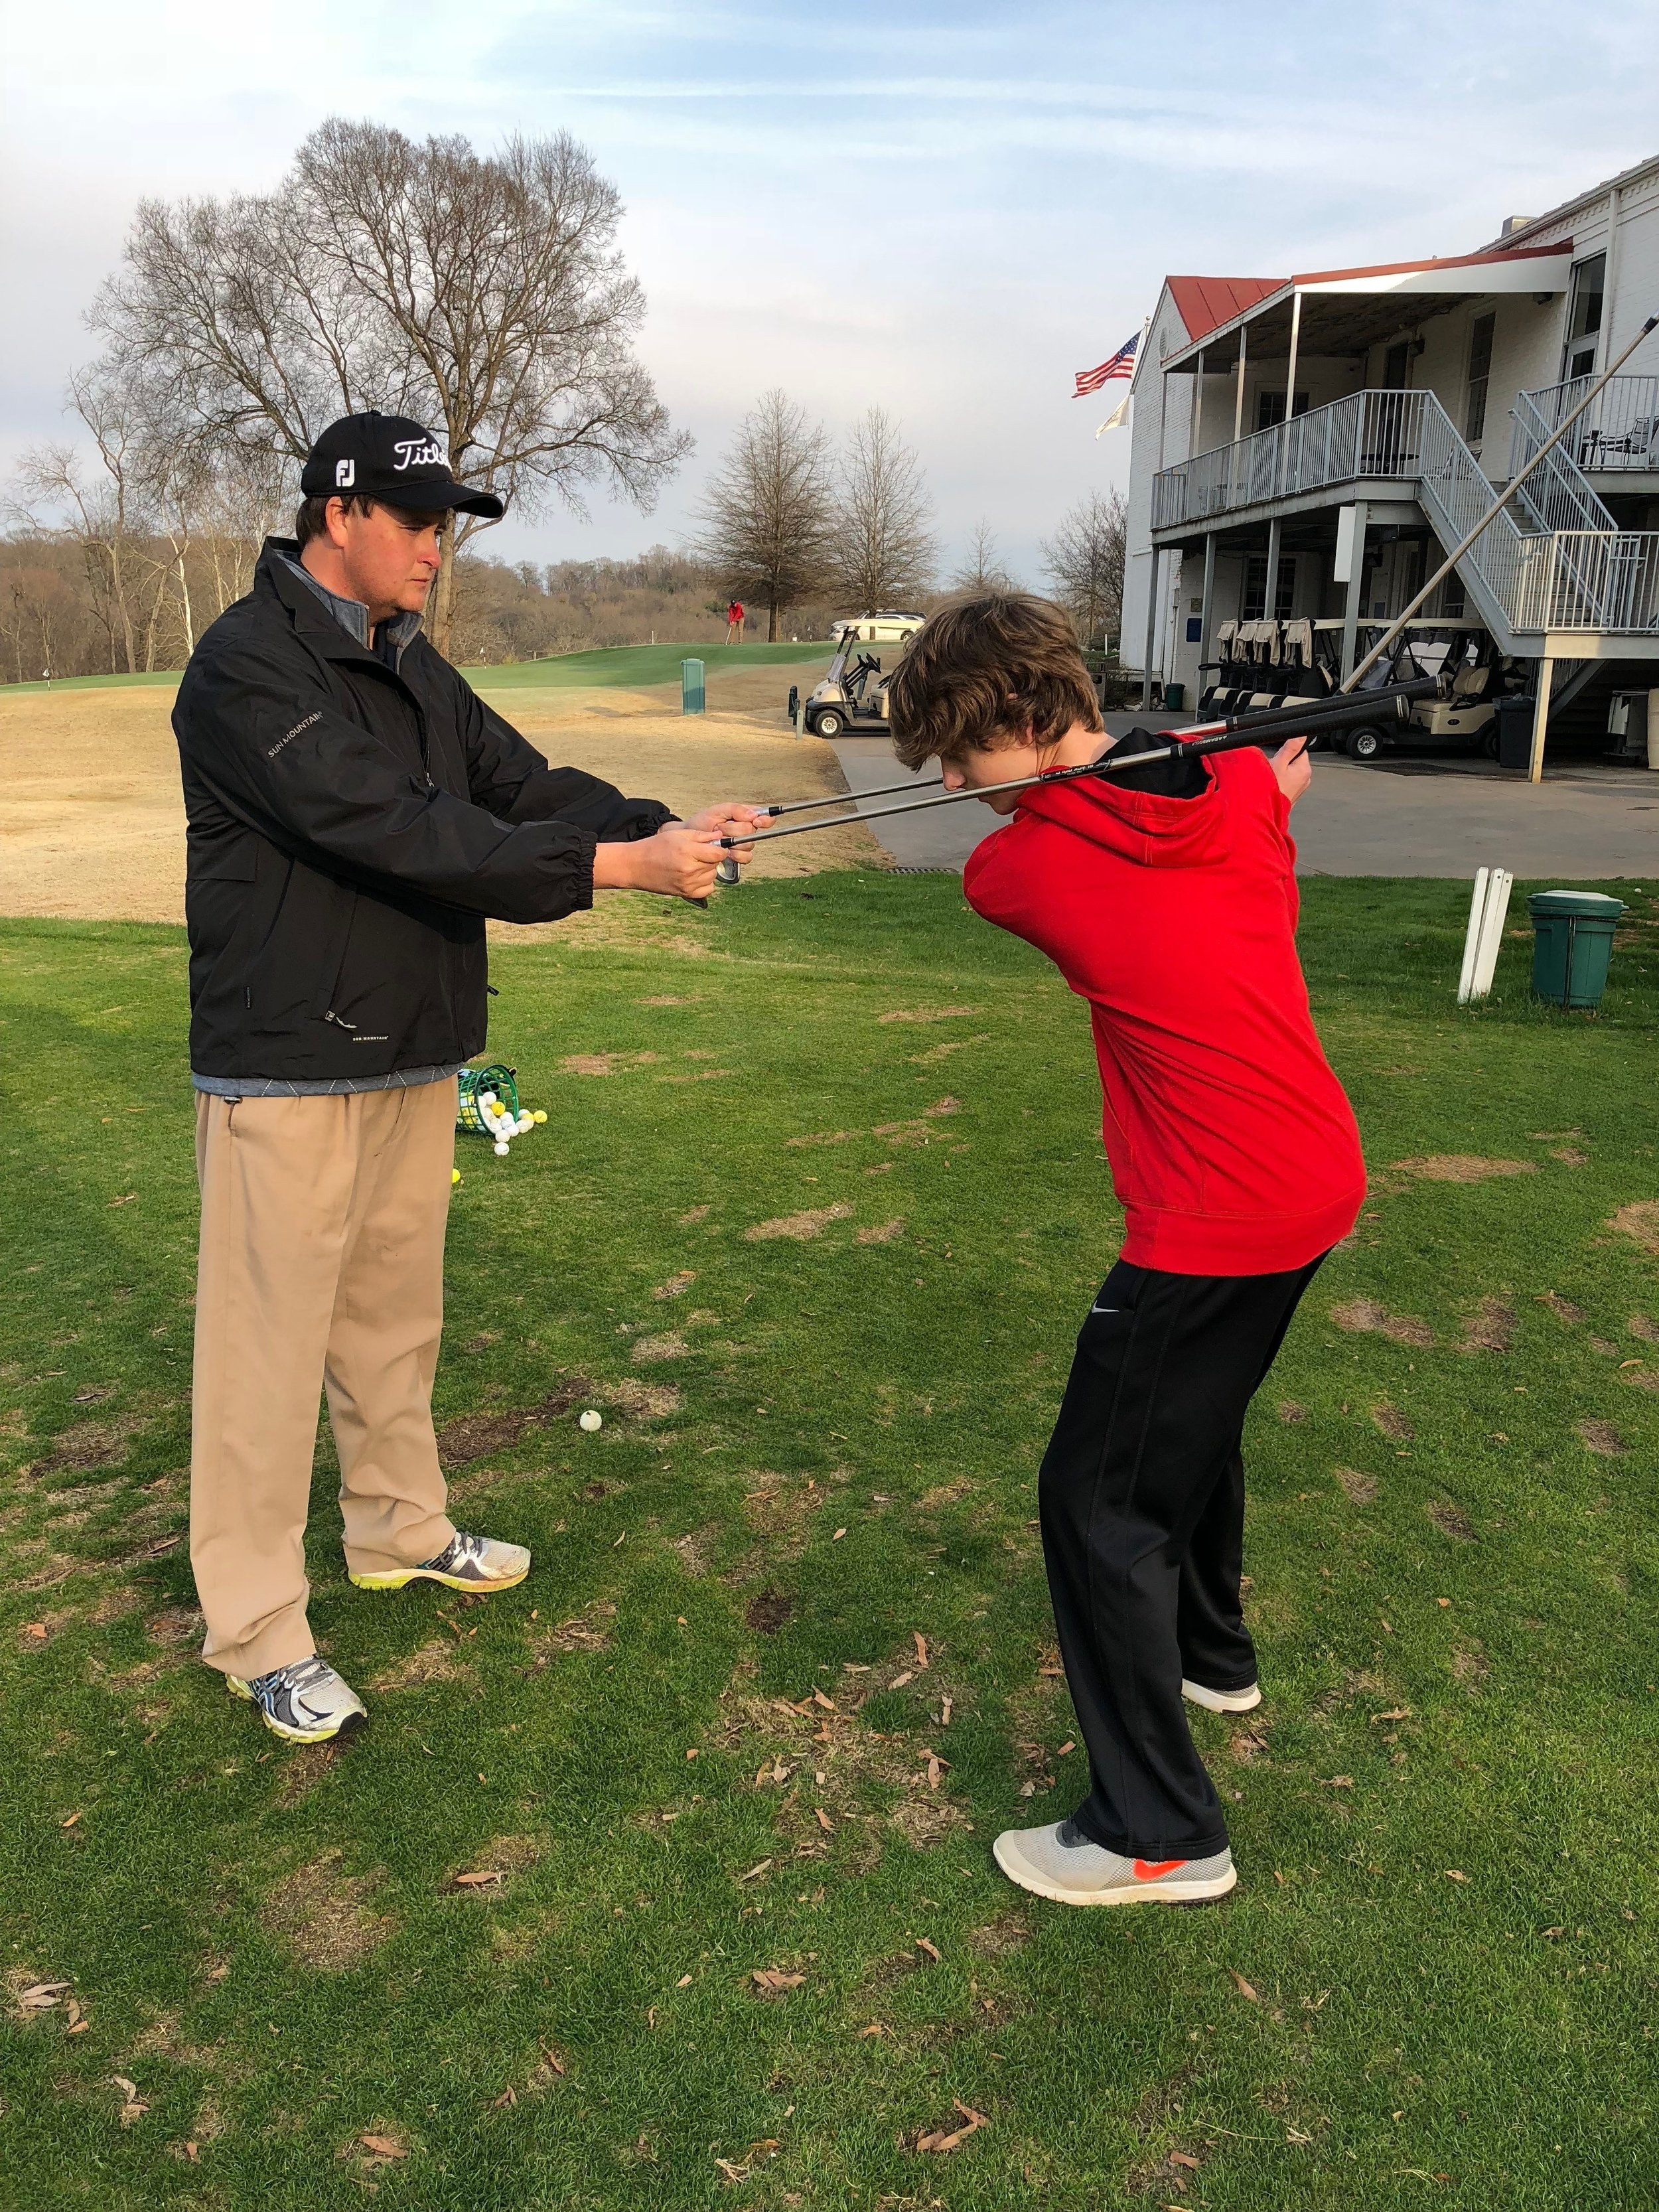 Private Instruction - While taking a lesson with me, you will be treated to a private atmosphere where we will fix your problems together! whether it's slicing, hooking or contact, I have the solution! Lessons are filling up fast so sign up now!